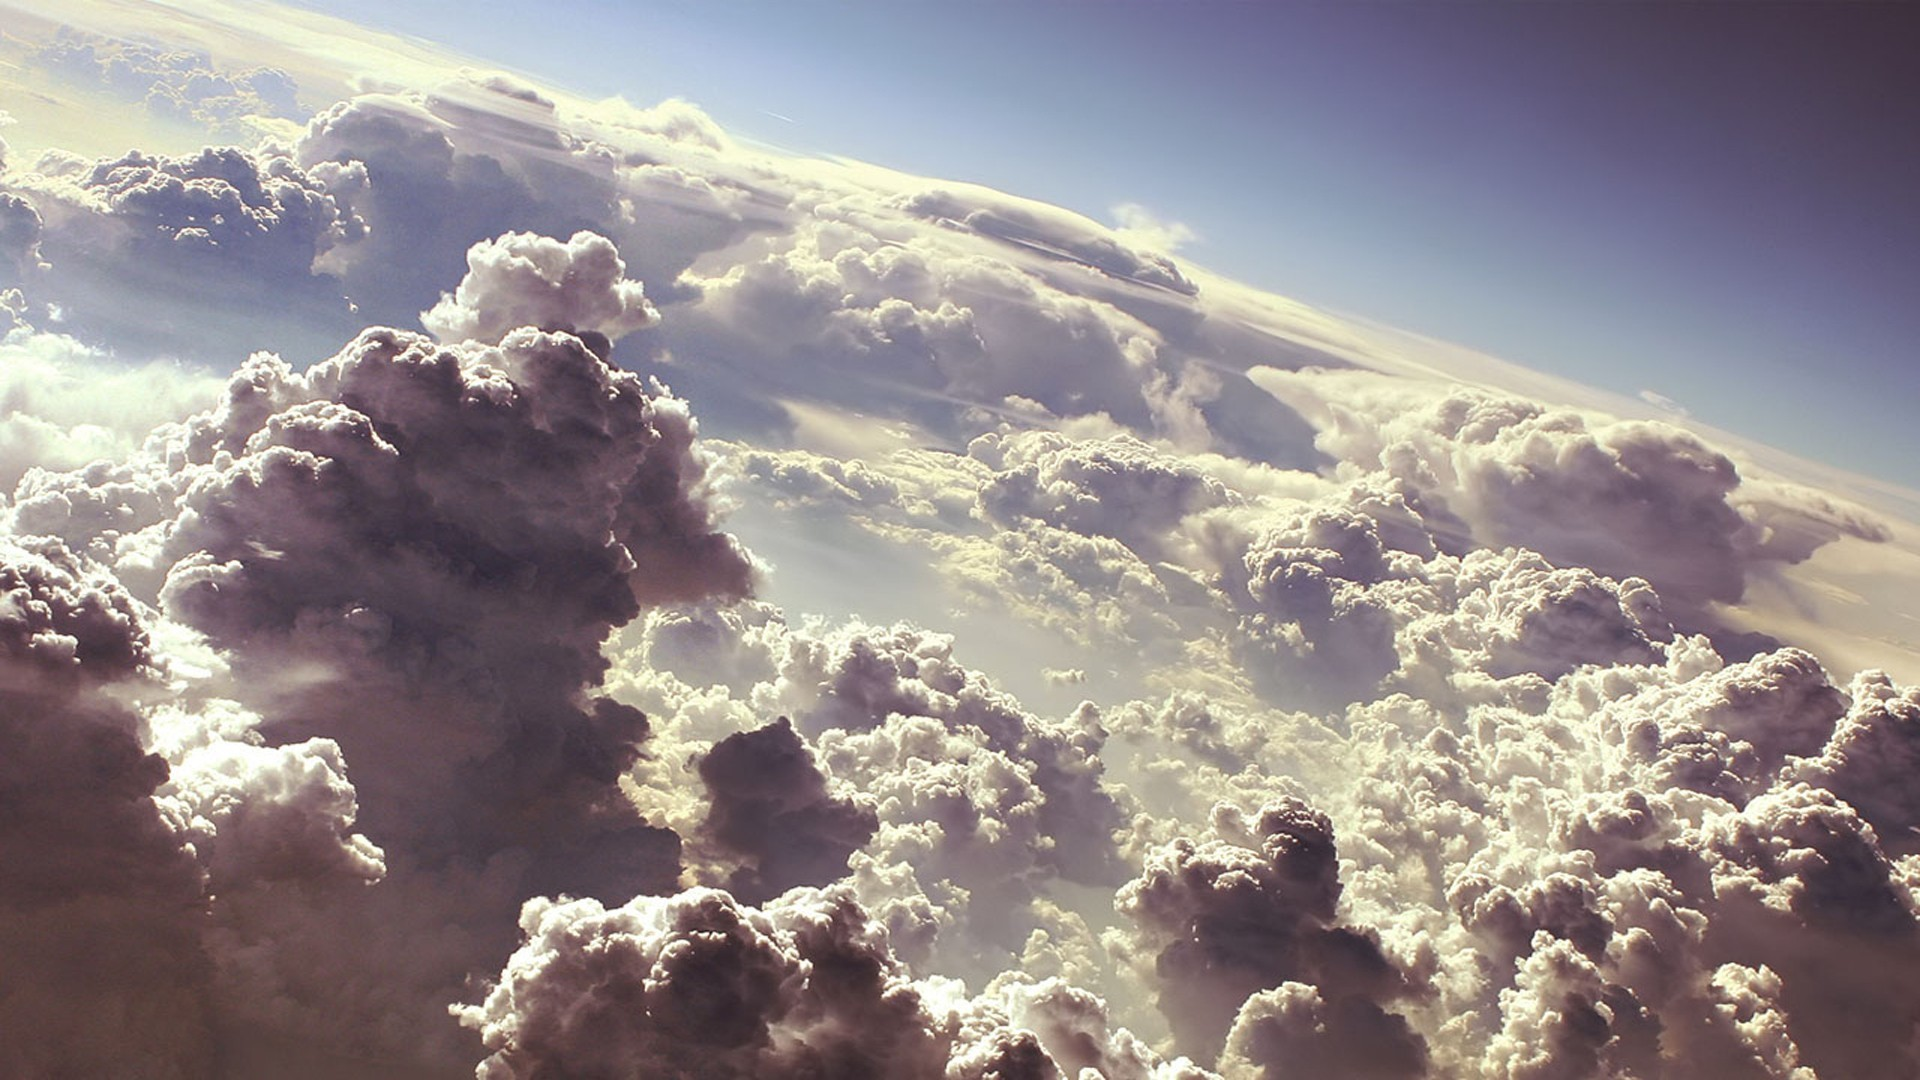 1920x1080 Download Cloud Background Images HD Wallpapers